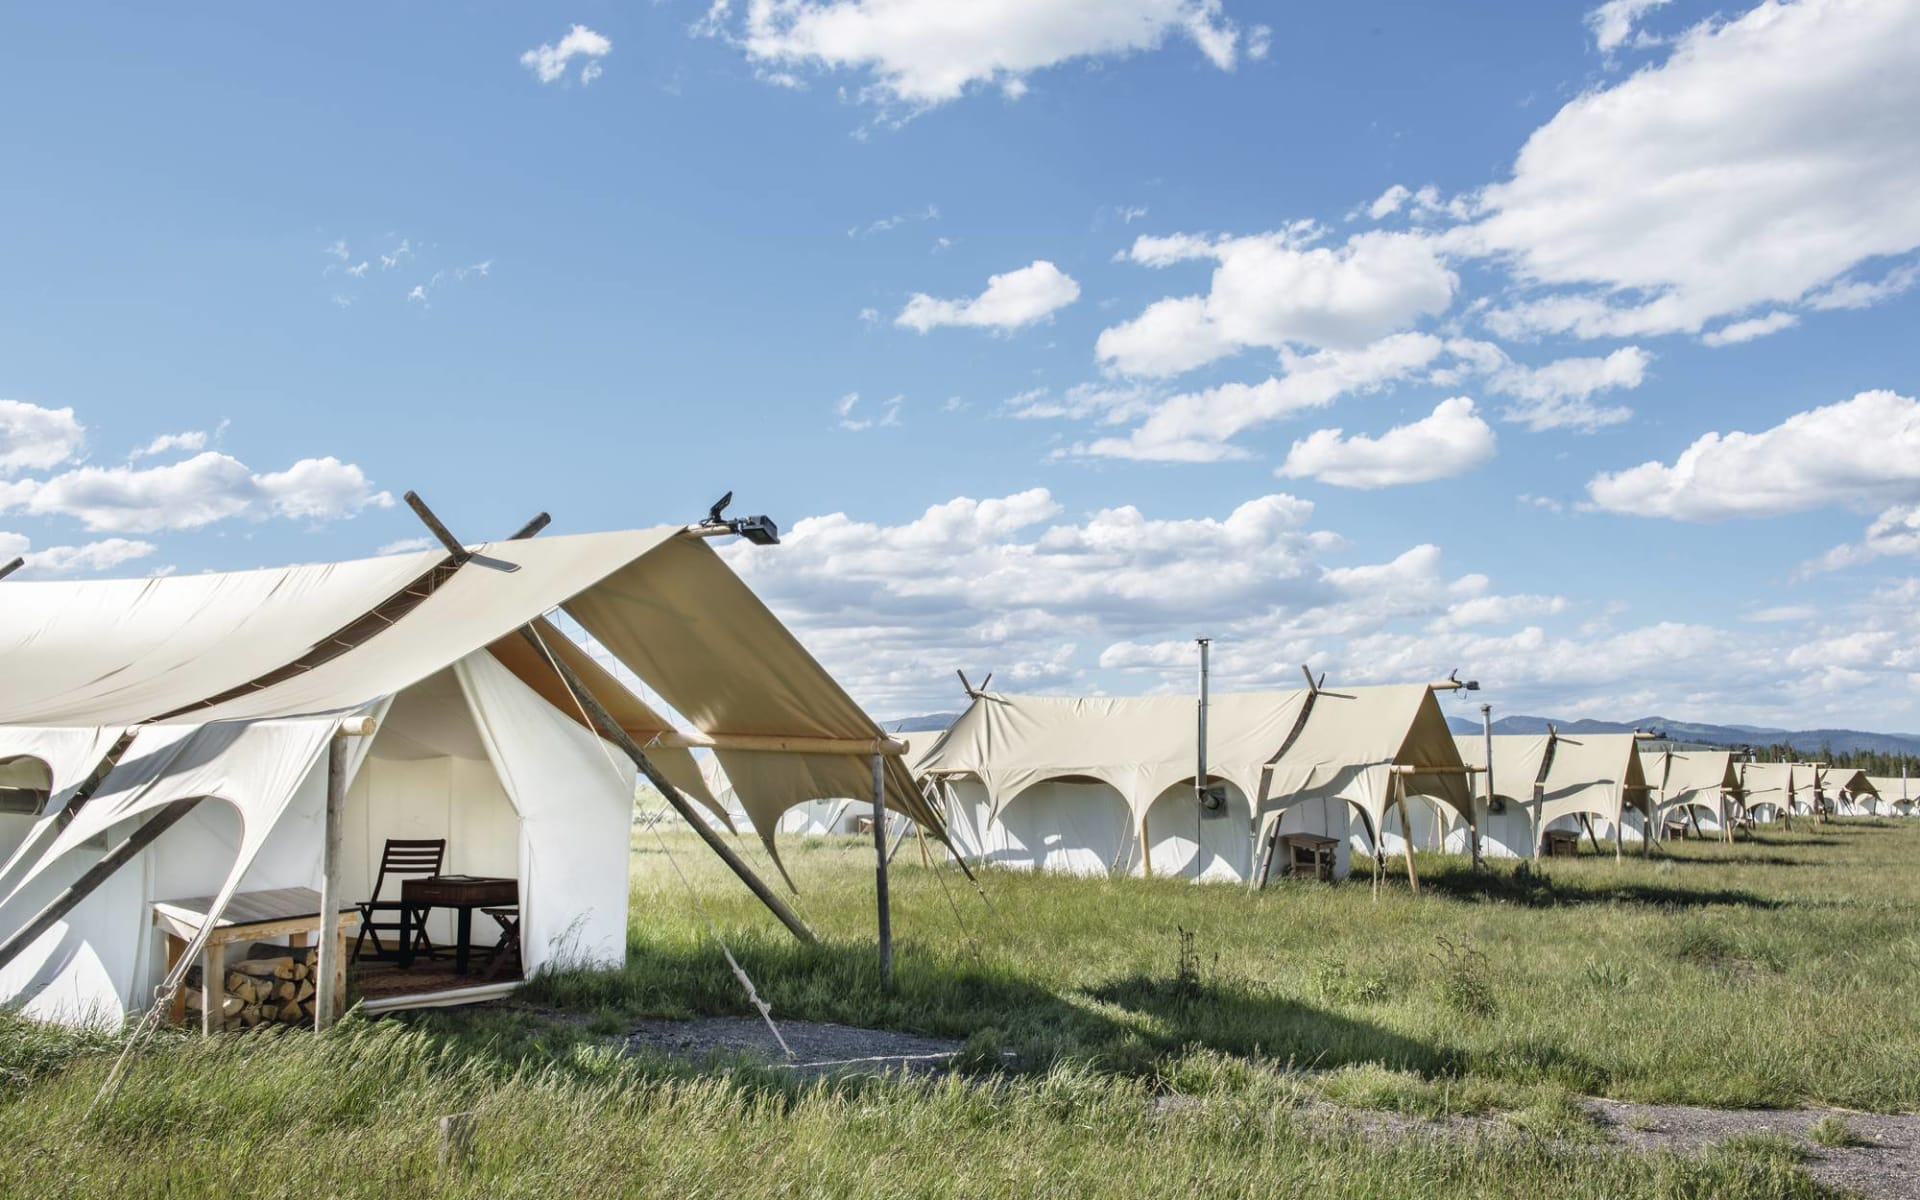 Under Canvas Yellowstone in West Yellowstone: Under Canvas Yellowstone - Overview